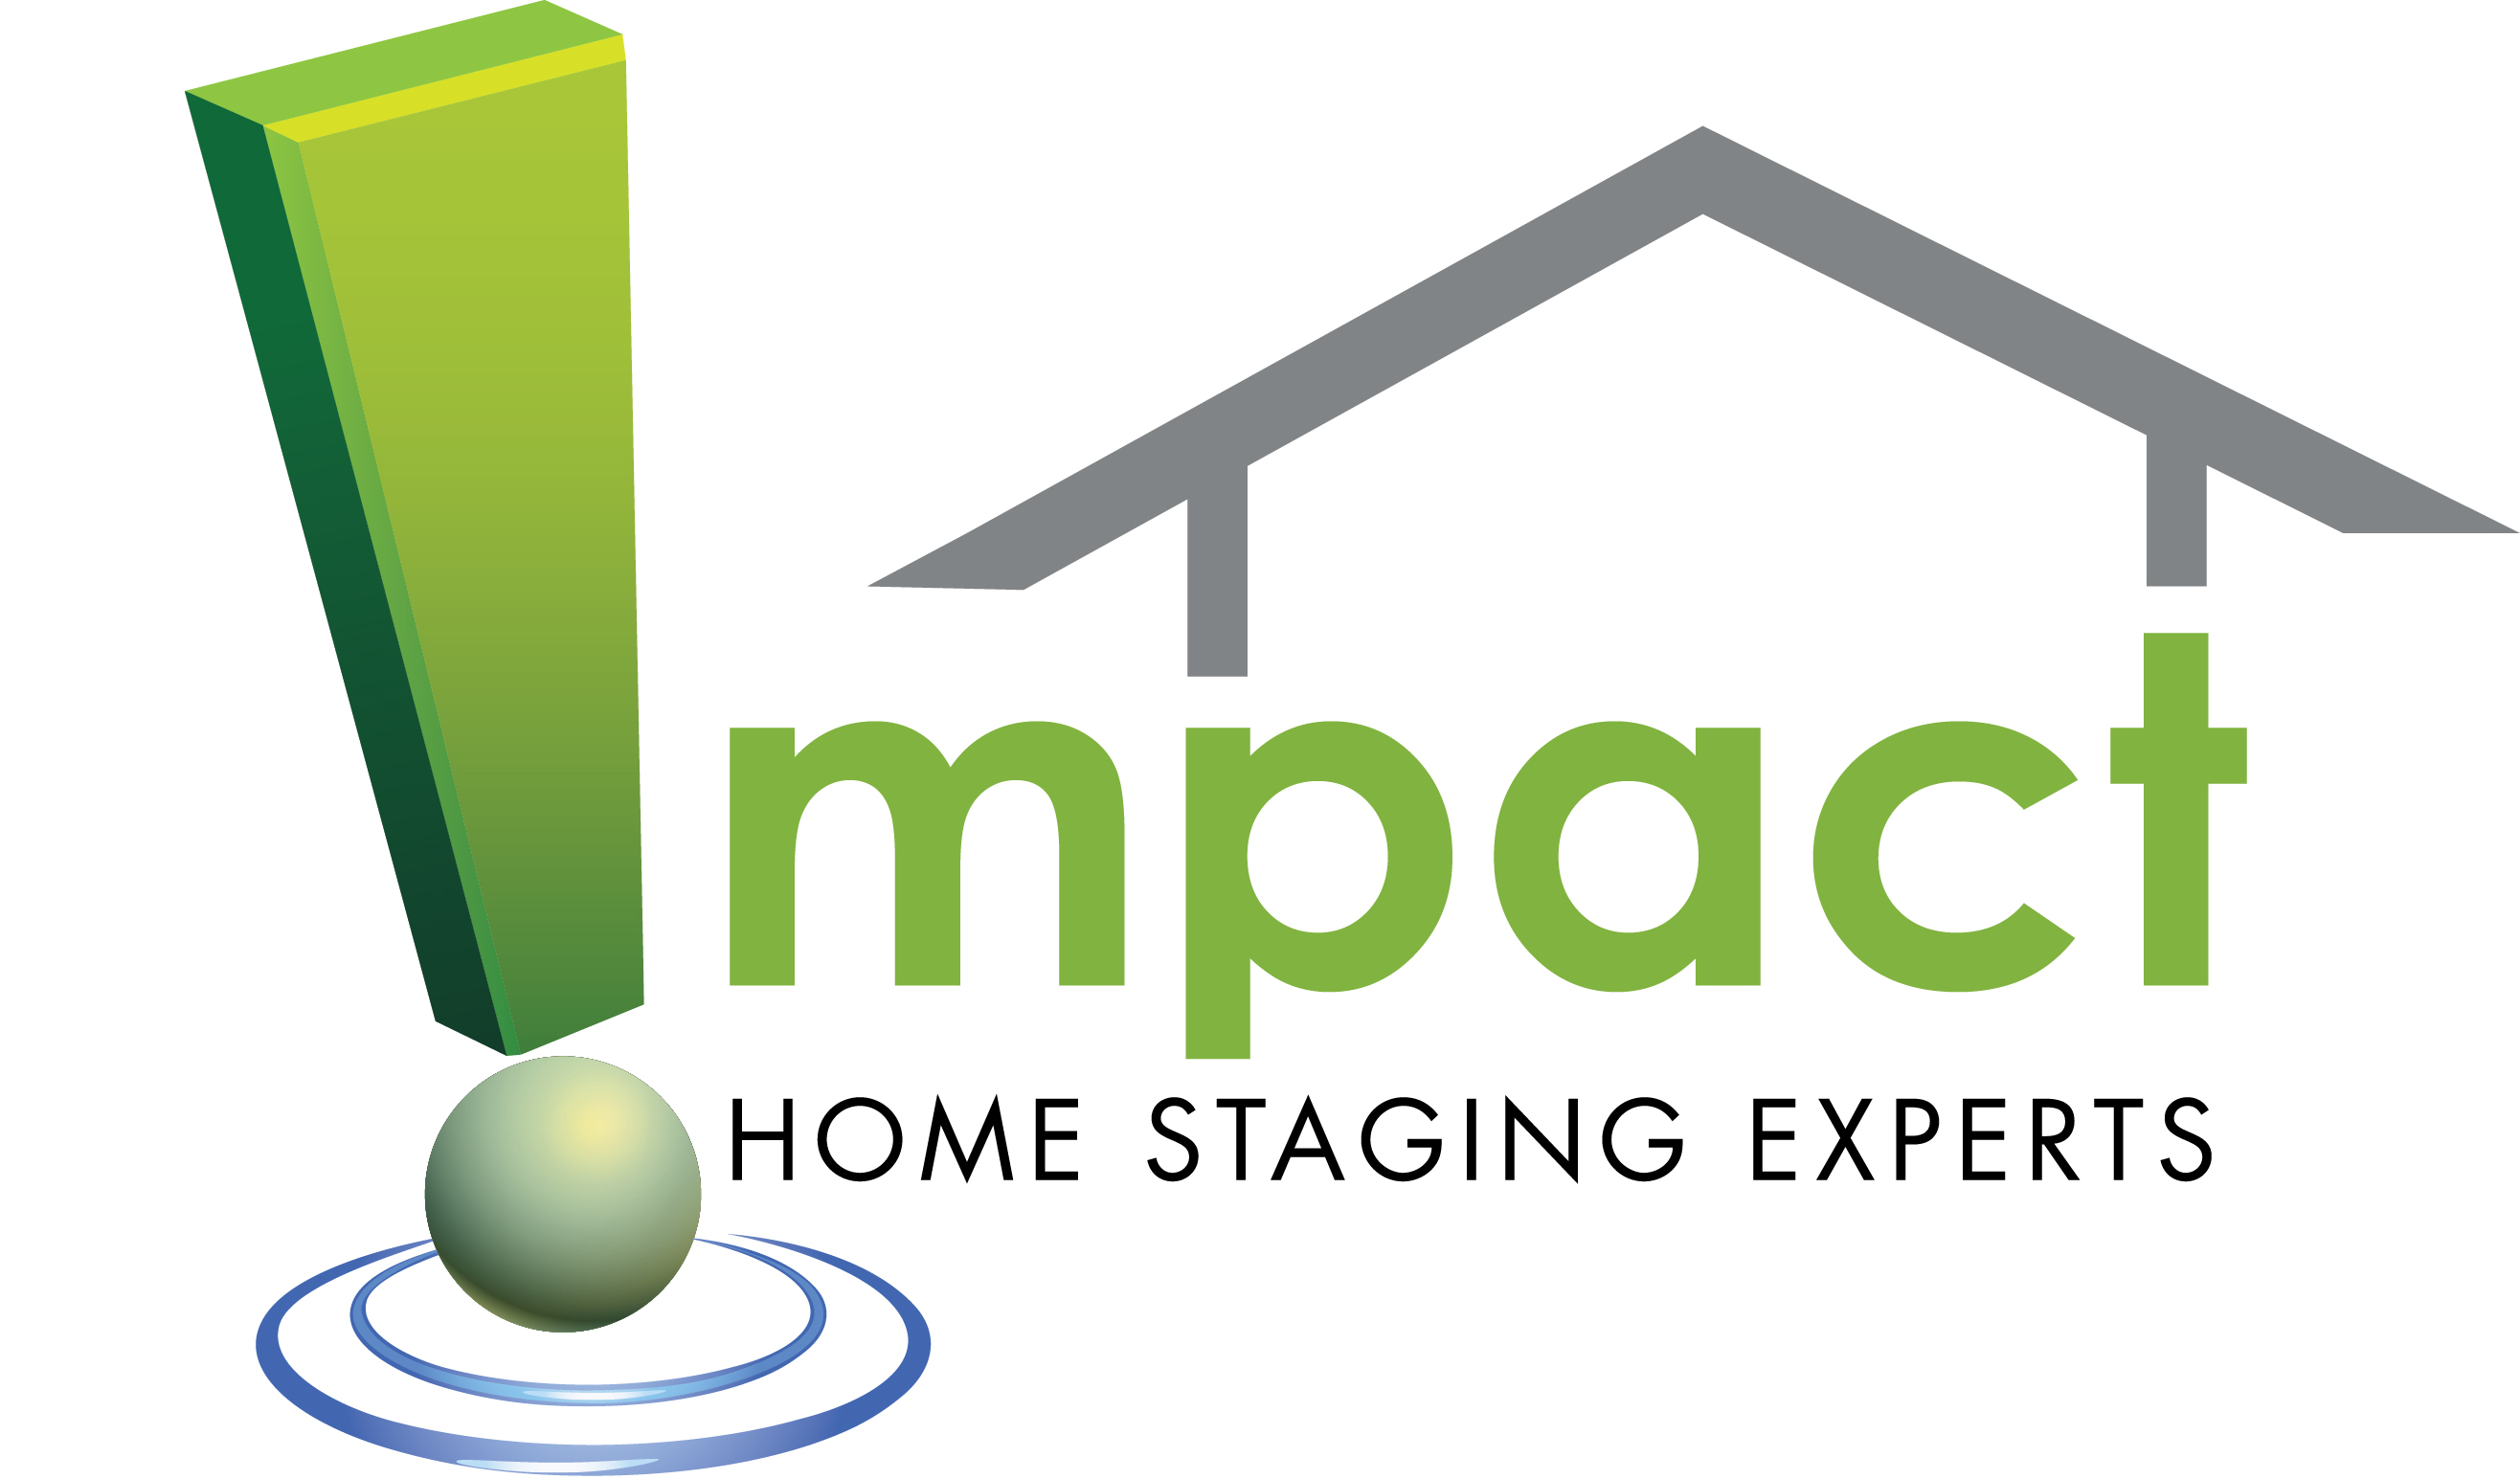 chris d gave impact home staging experts a 5 star review. Black Bedroom Furniture Sets. Home Design Ideas